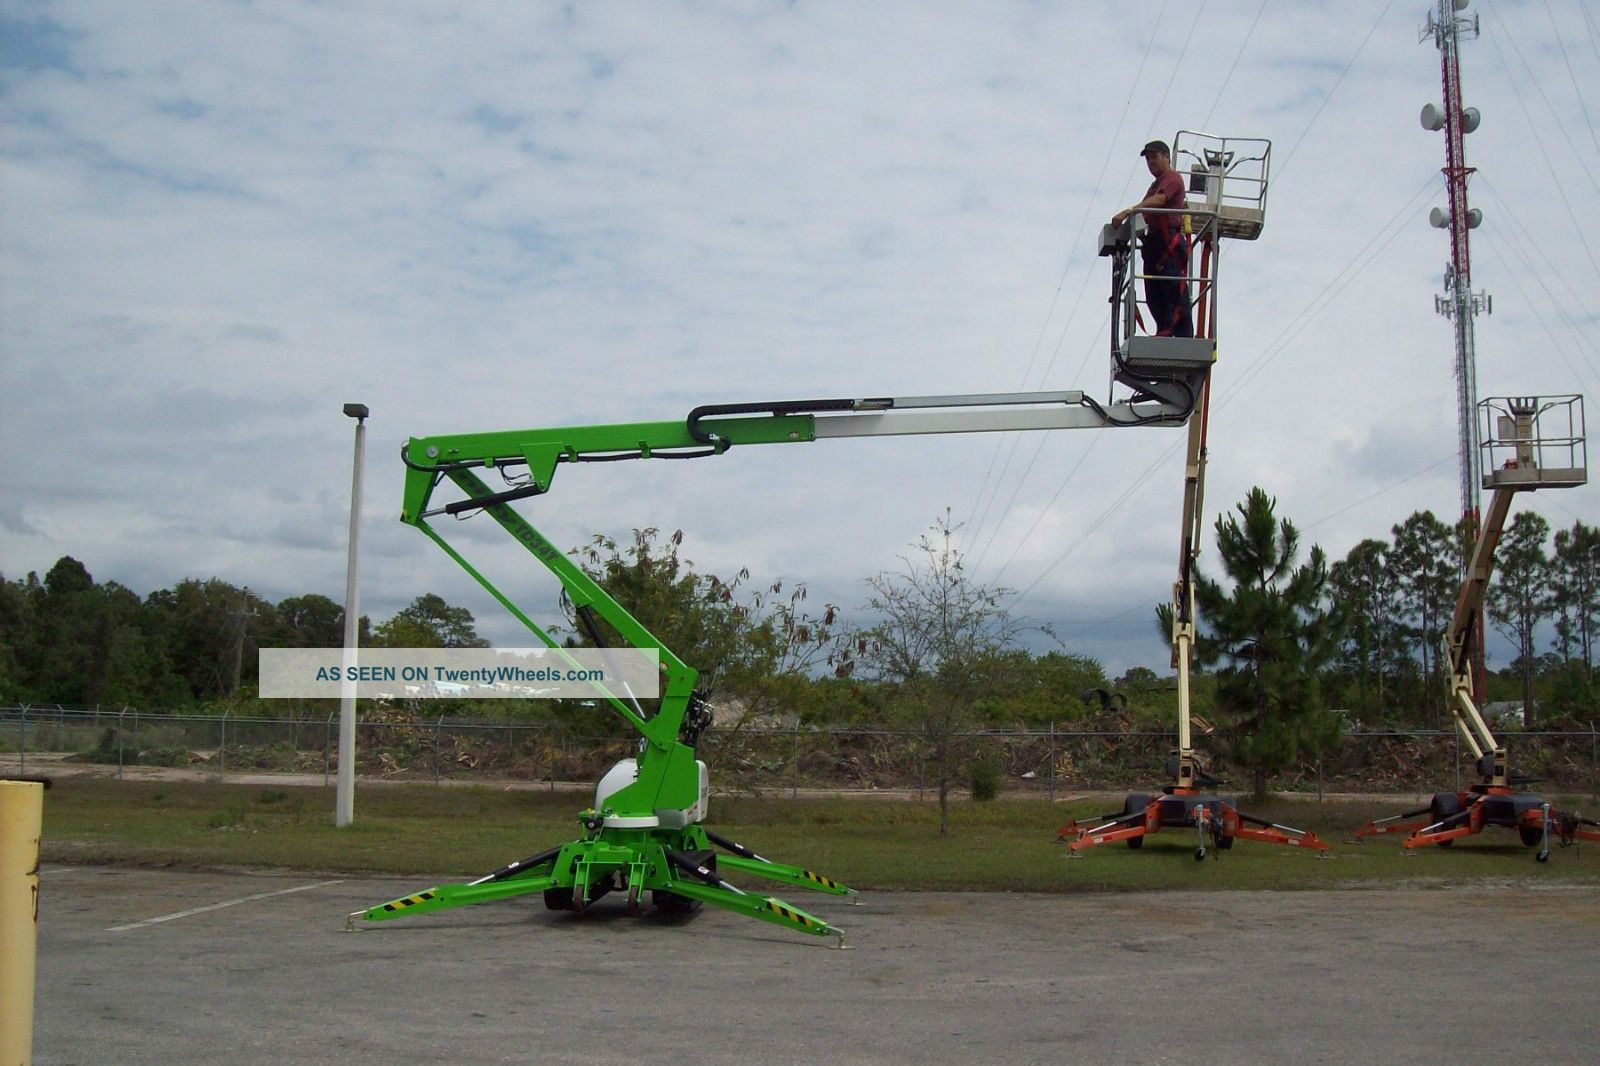 Nifty Td34t 40 ' Track Boom Lift,  40 ' Work Height,  4000 Lbs,  Climbs 60% Grade,  New2013 Lifts photo